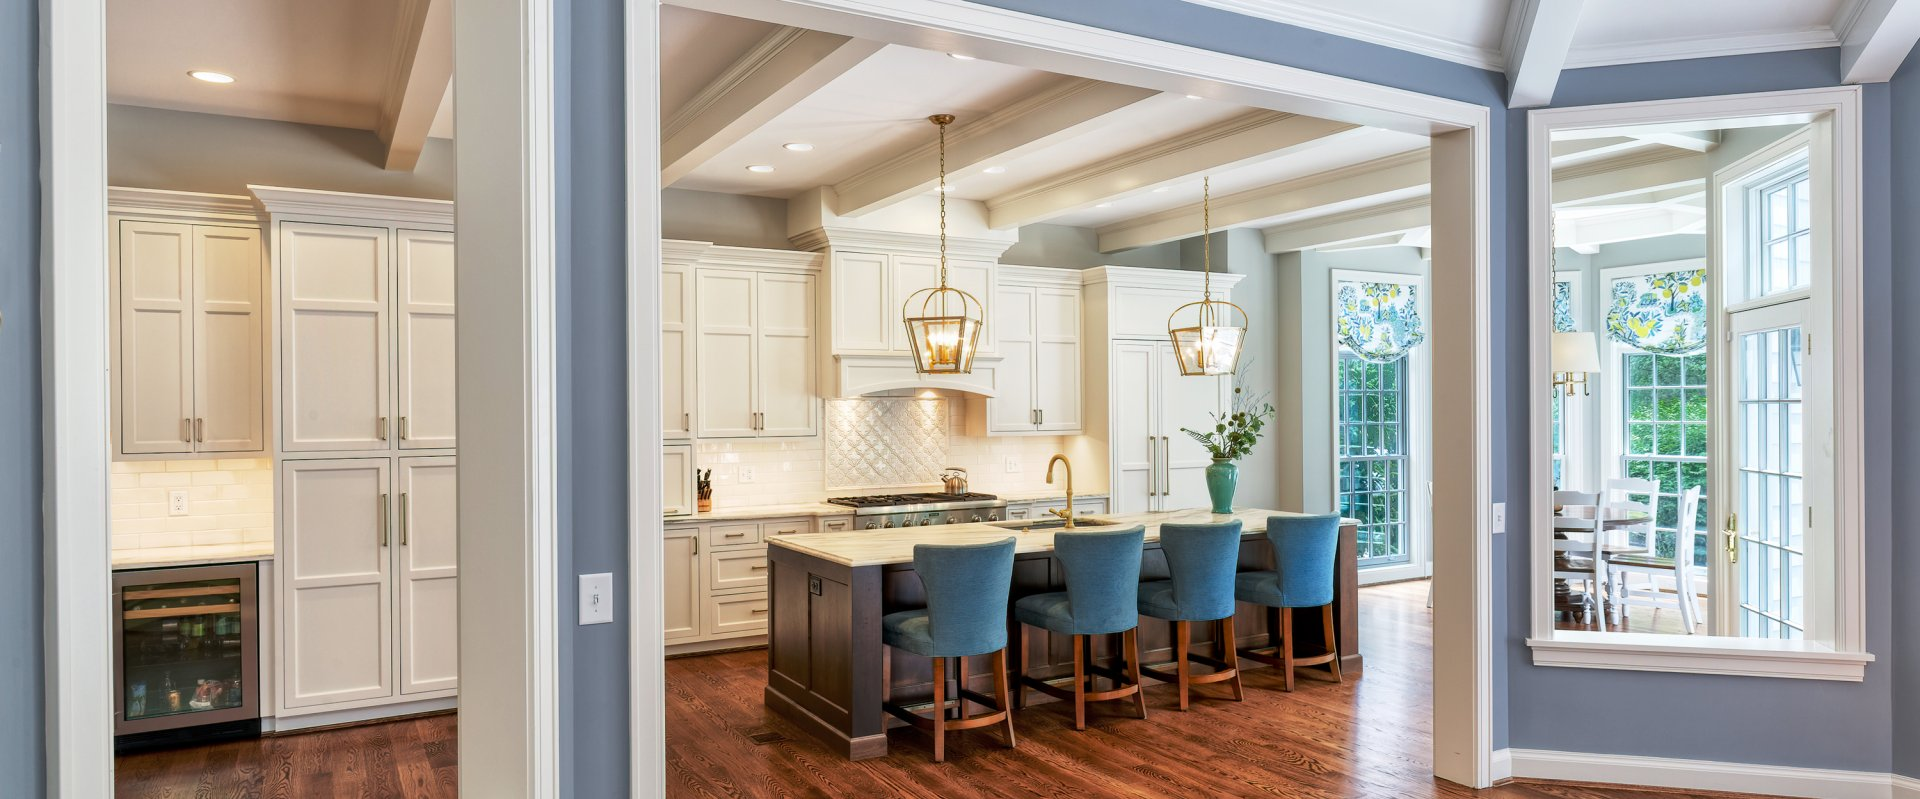 Gourmet kitchen renovation and breakfast nook addition in Hyde Park Wilcox Architecture residential architect